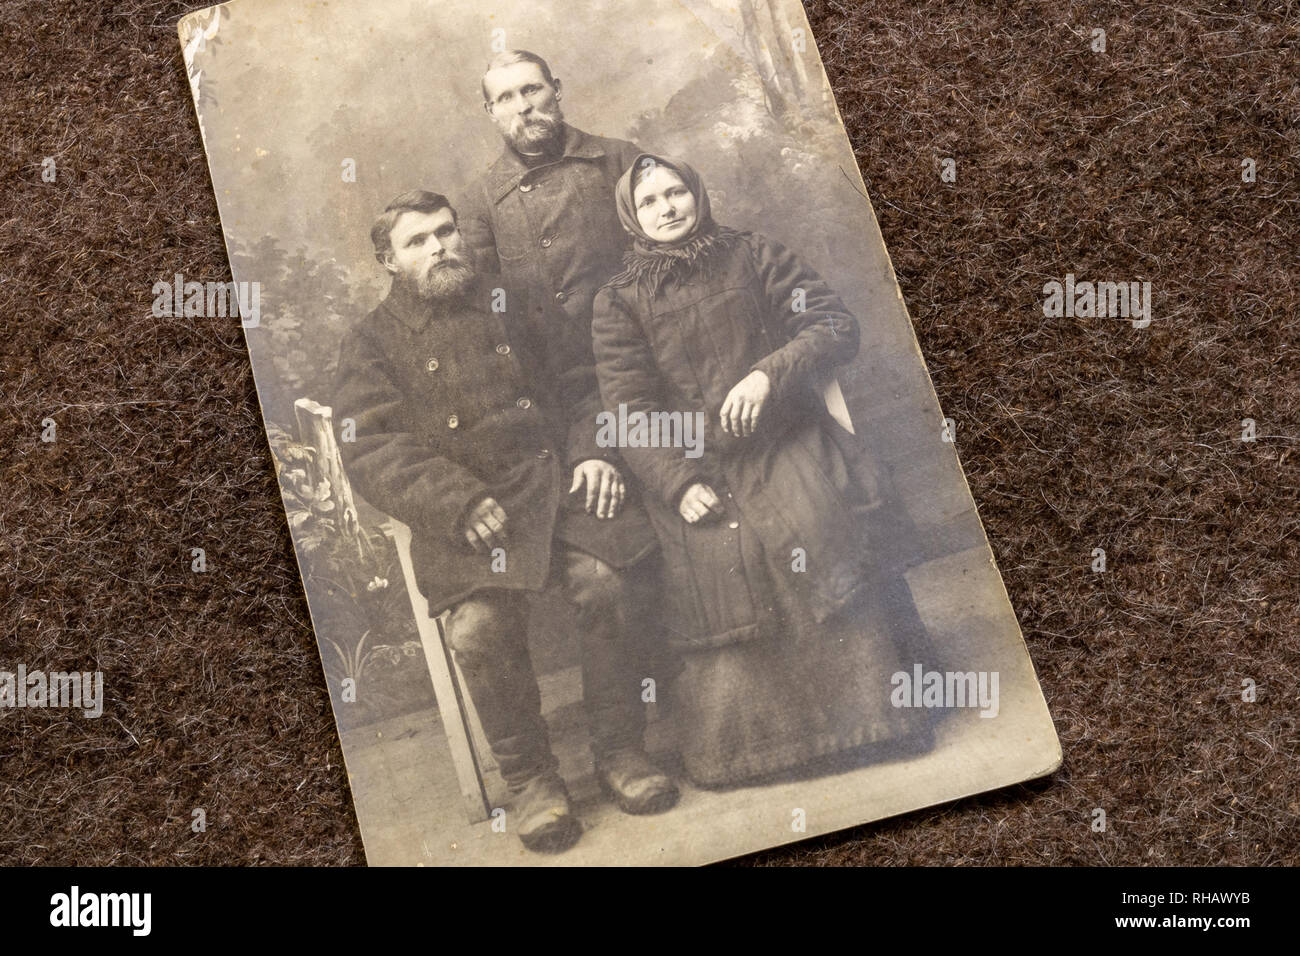 Postcard of poor family in period of World War I on trench coat background - Stock Image